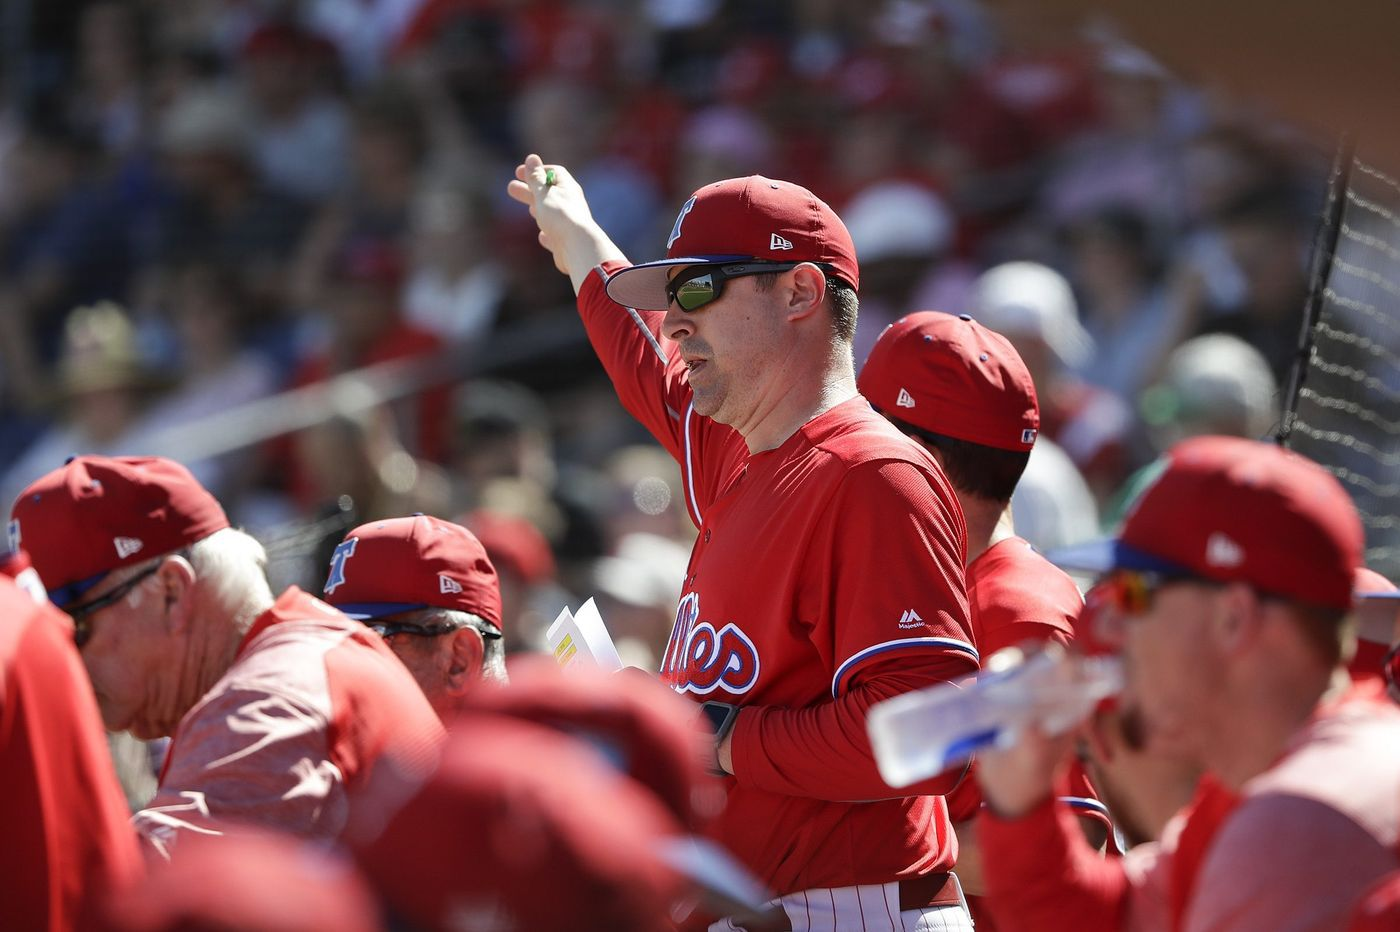 Phillies pitching coach: Starting rotation doesn't need upgrades